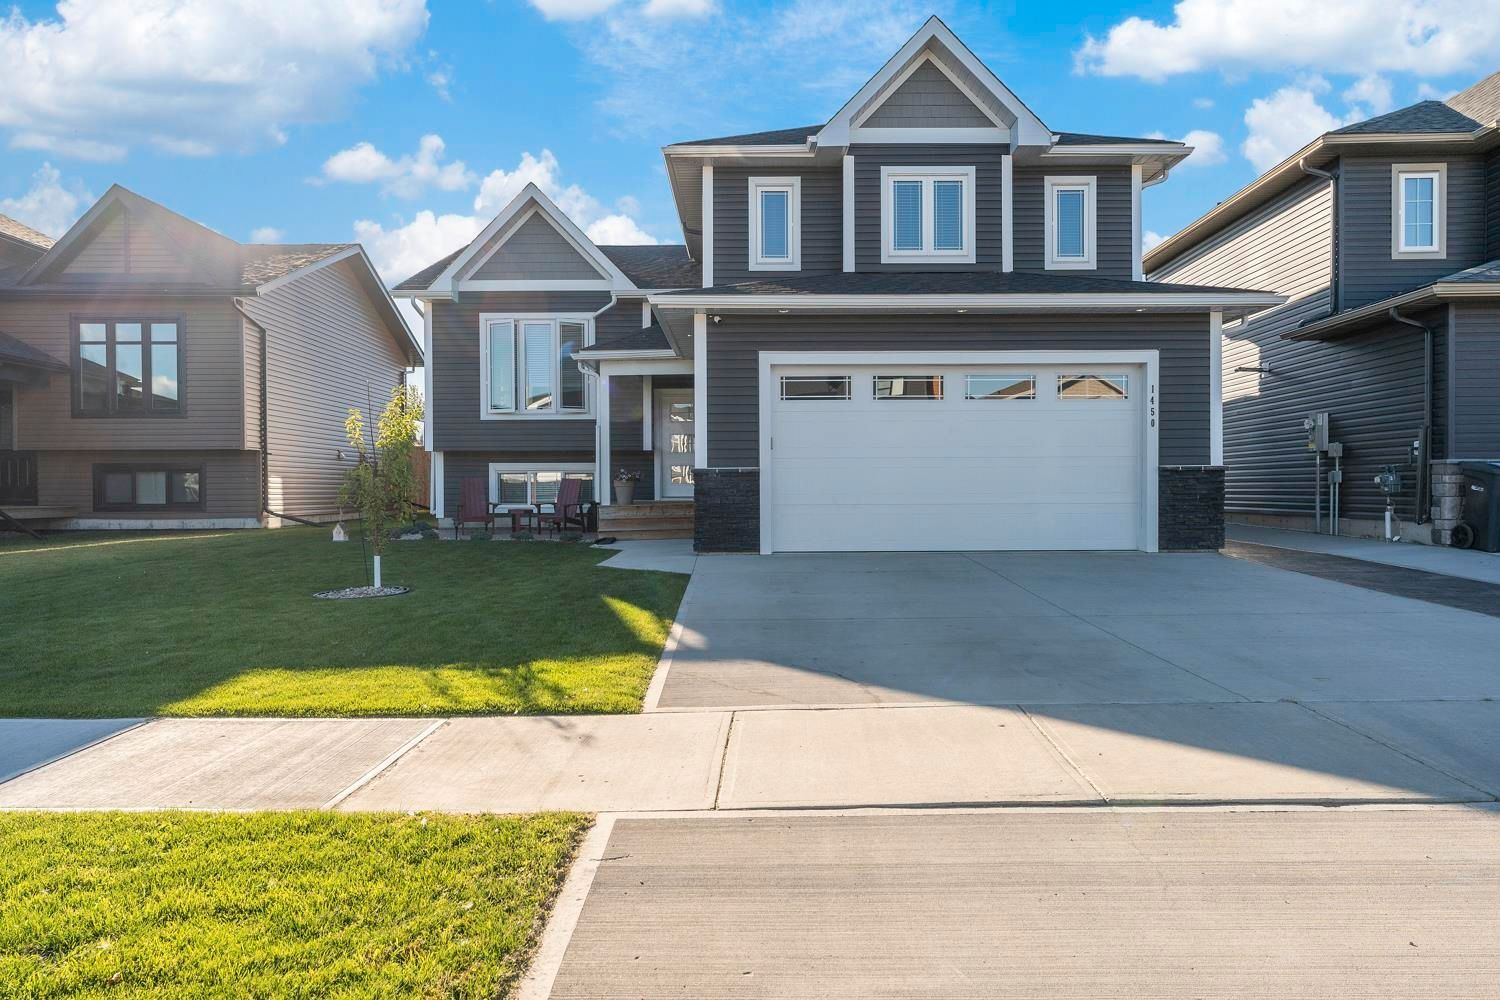 Main Photo: 1450 WILDRYE Crescent: Cold Lake House for sale : MLS®# E4264484